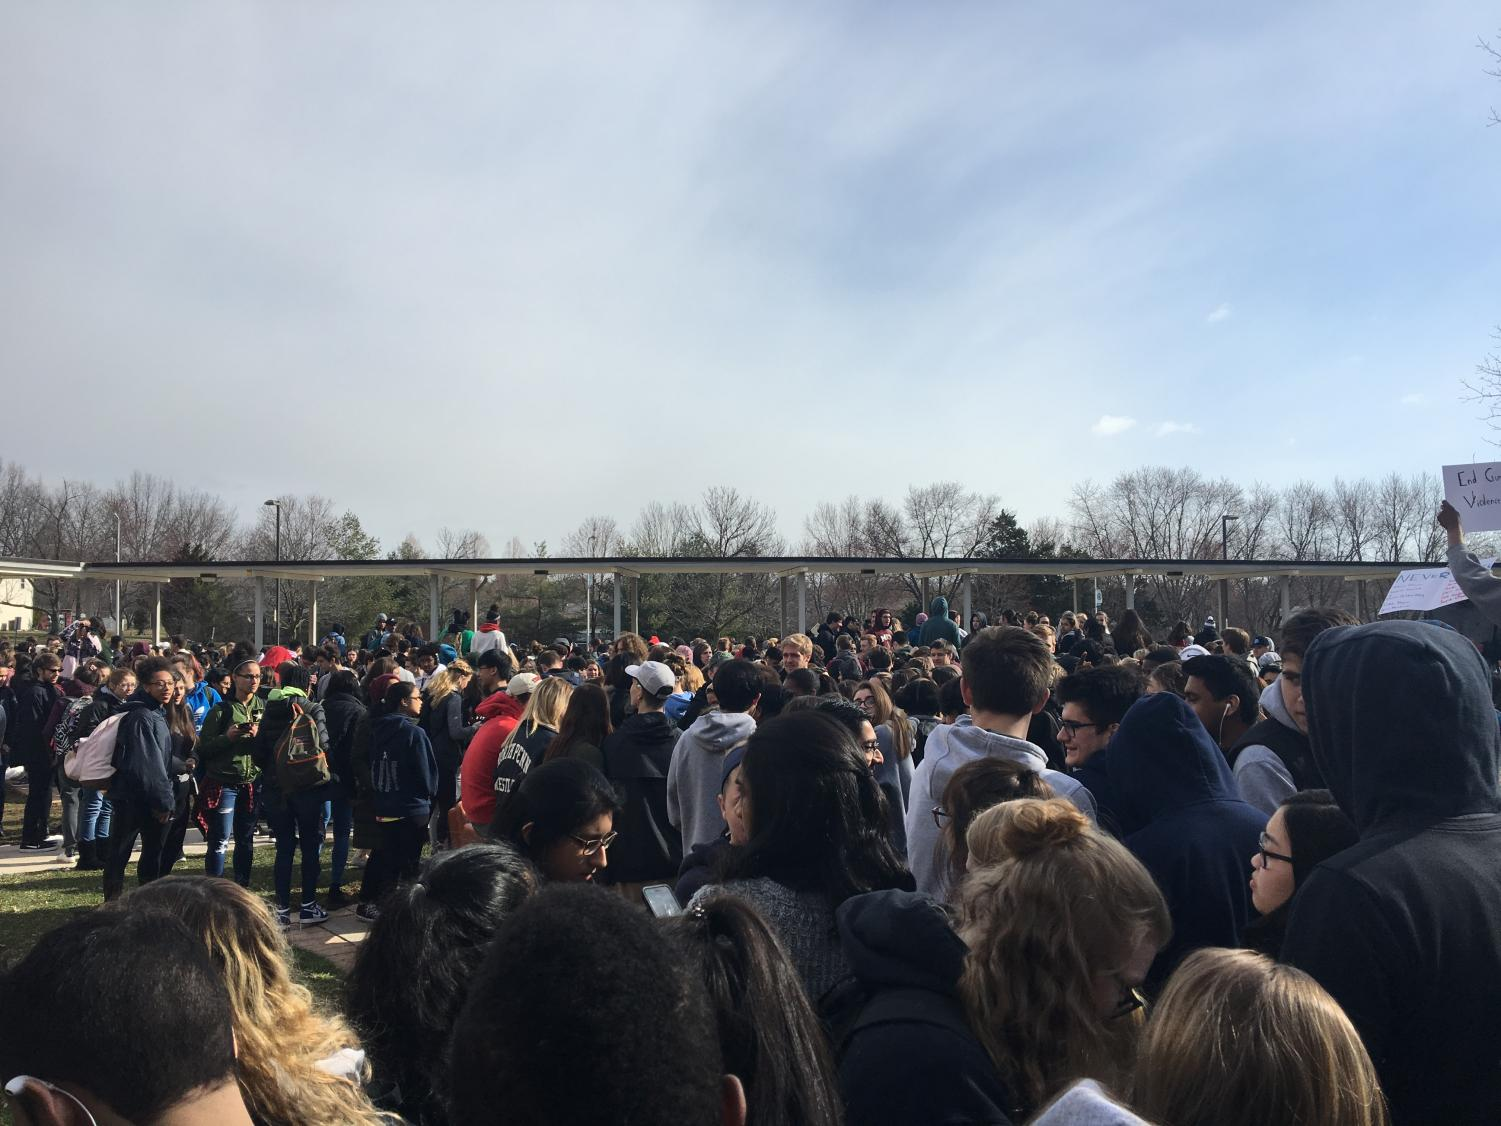 Wednesday, March 14th, North Penn High School students participated in the national school walkout against school shootings.